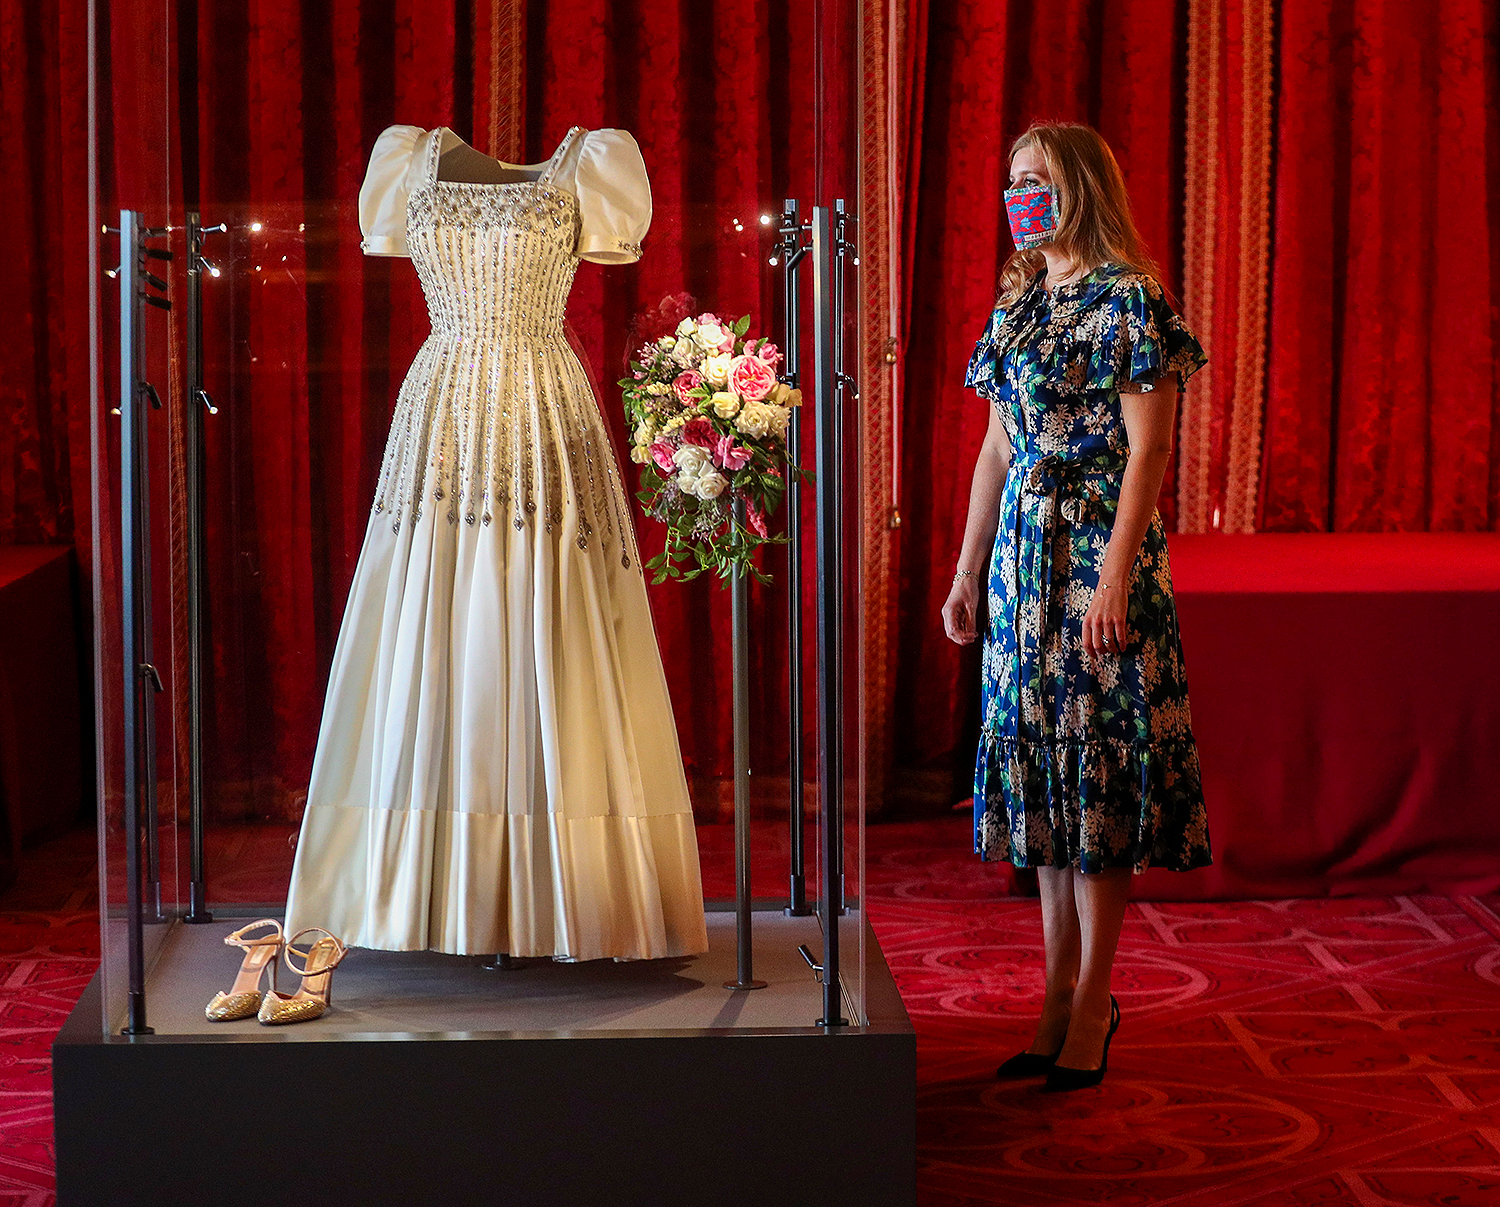 Princess Beatrice dress